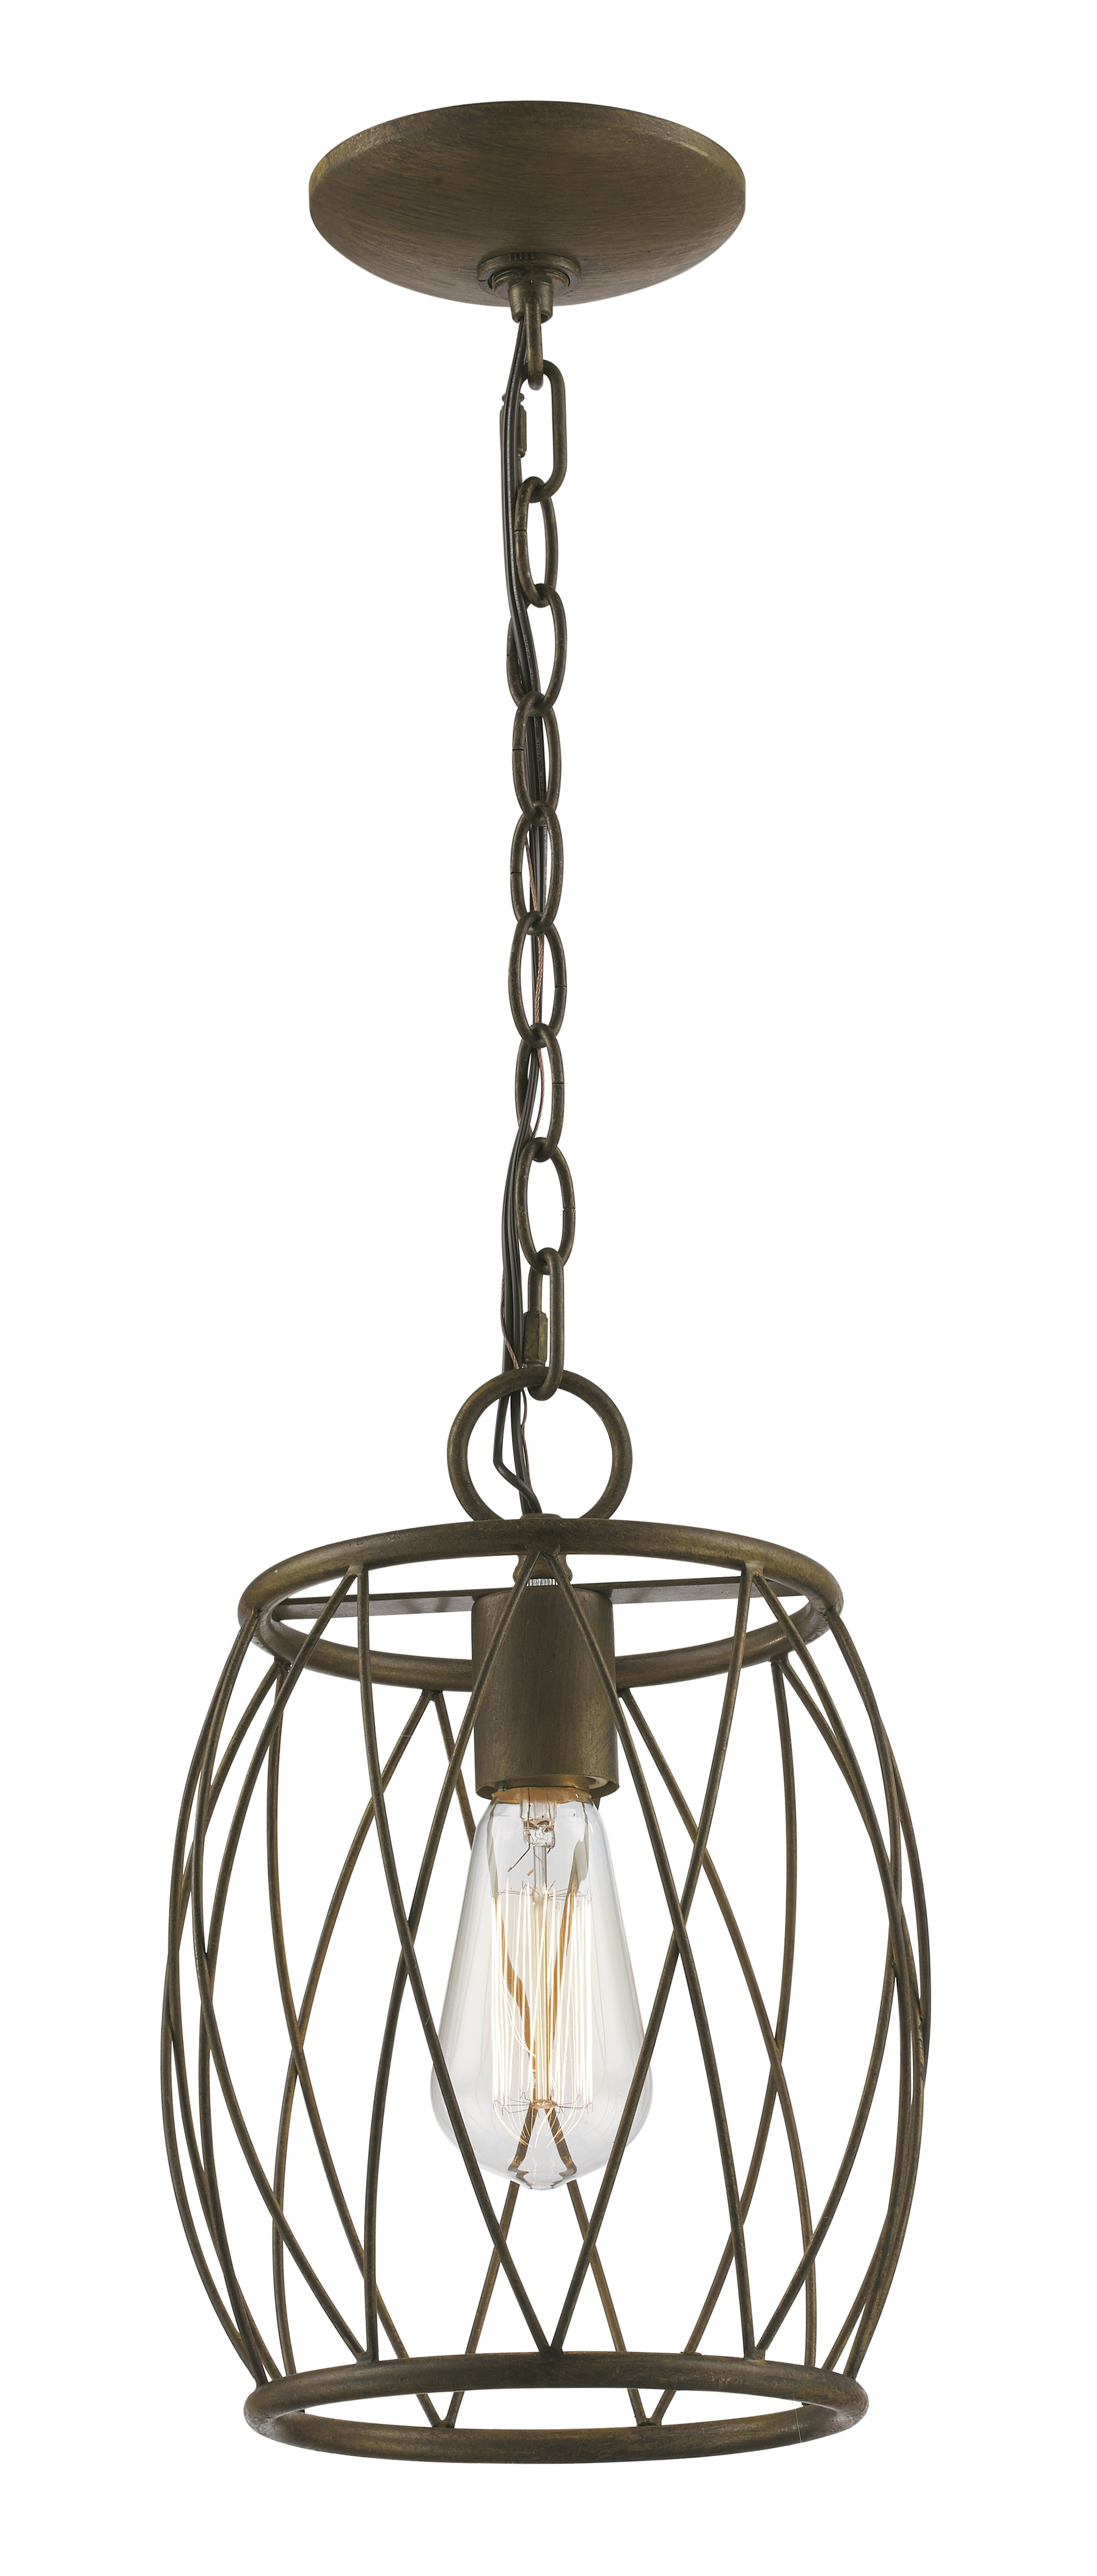 Wrought Studio Poynter 1 Light Single Cylinder Pendant Regarding Most Recent Hurst 1 Light Single Cylinder Pendants (View 20 of 20)